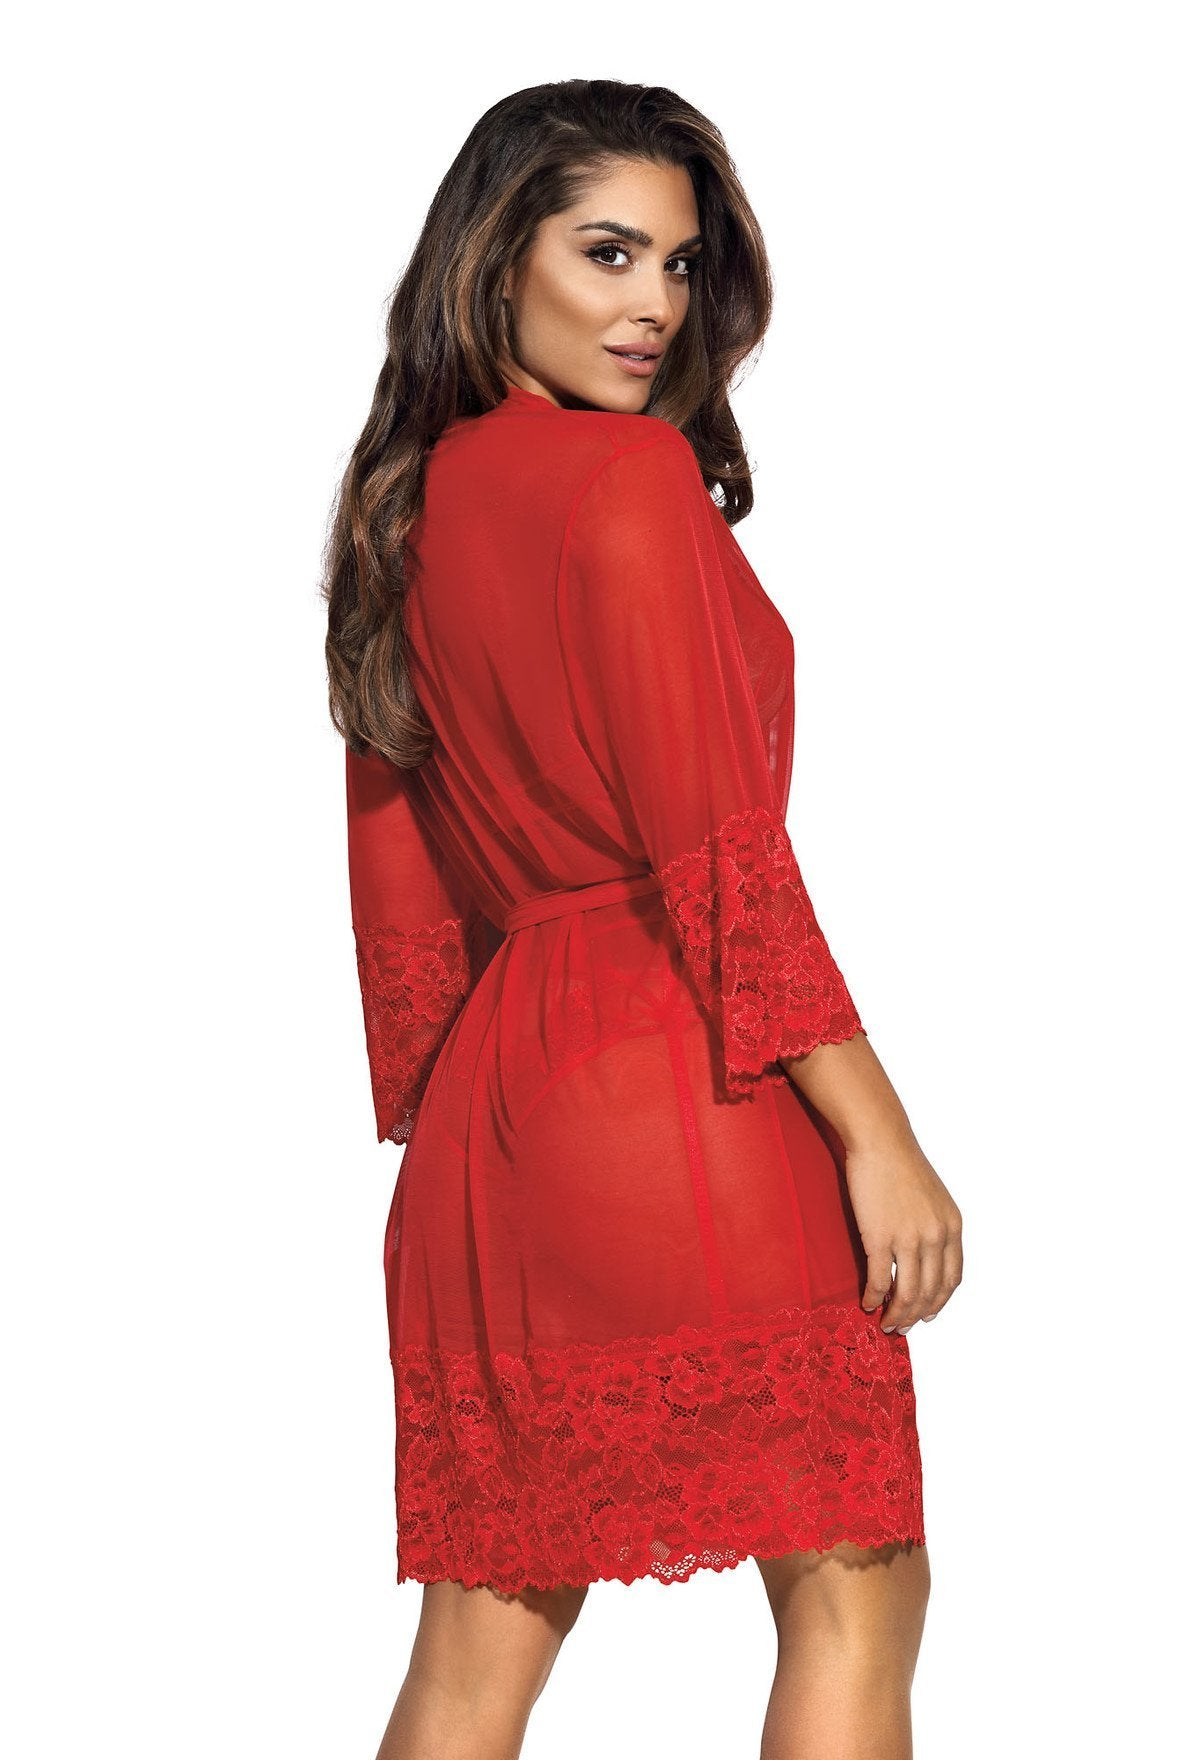 Axami V-8860 Red Lace Peignoir